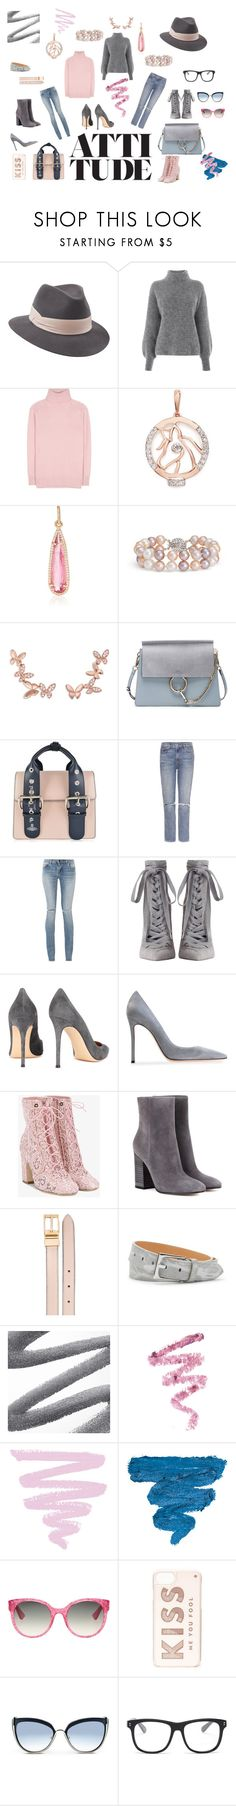 """""""Pearl Attitude..."""" by athinakarayiannide ❤ liked on Polyvore featuring Penmayne of London, Warehouse, Tomas Maier, LC COLLECTION, Irene Neuwirth, Blue Nile, Anyallerie, Chloé, Vivienne Westwood and GRLFRND"""